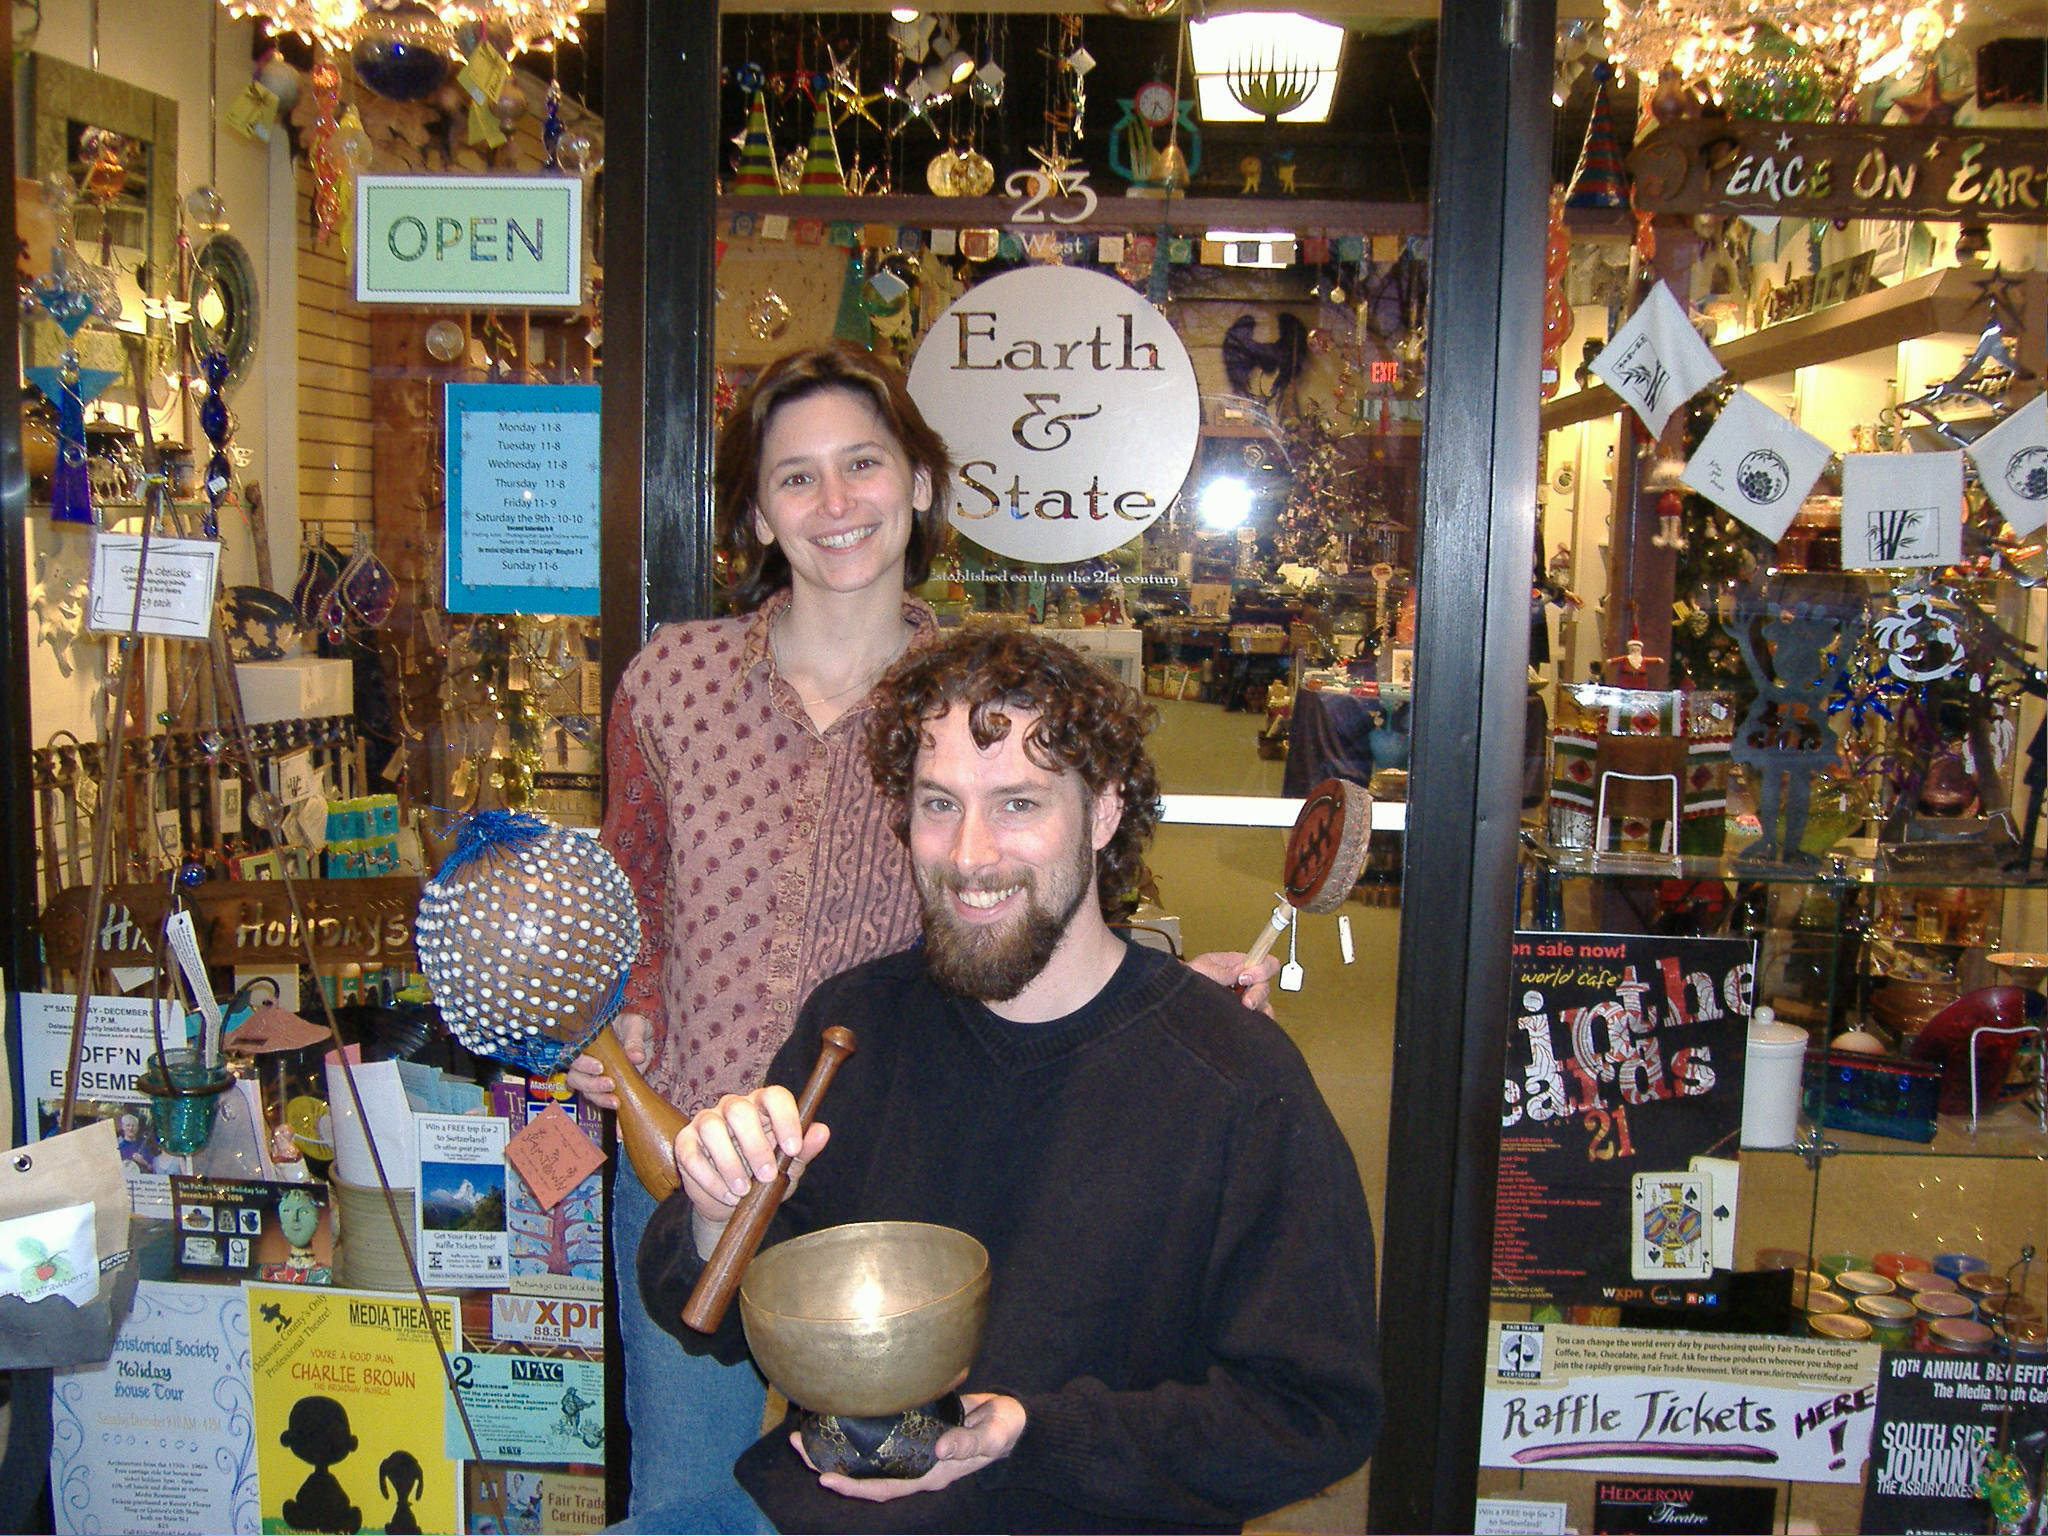 Heather & Drew Arata with fairly traded items at their Media store, Earth & State